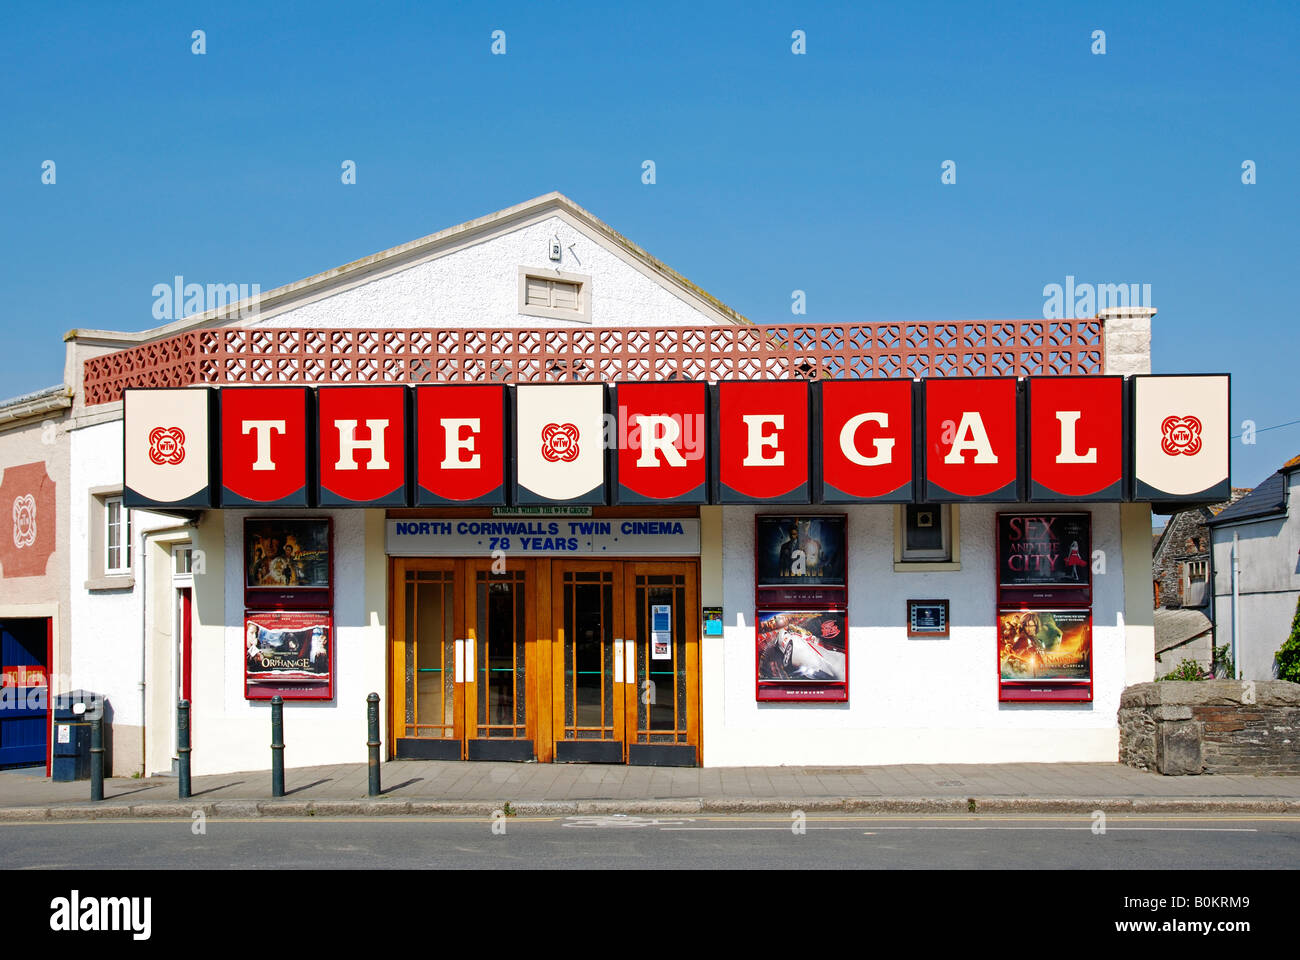 the old regal cinema at wadebridge in cornwall,england - Stock Image